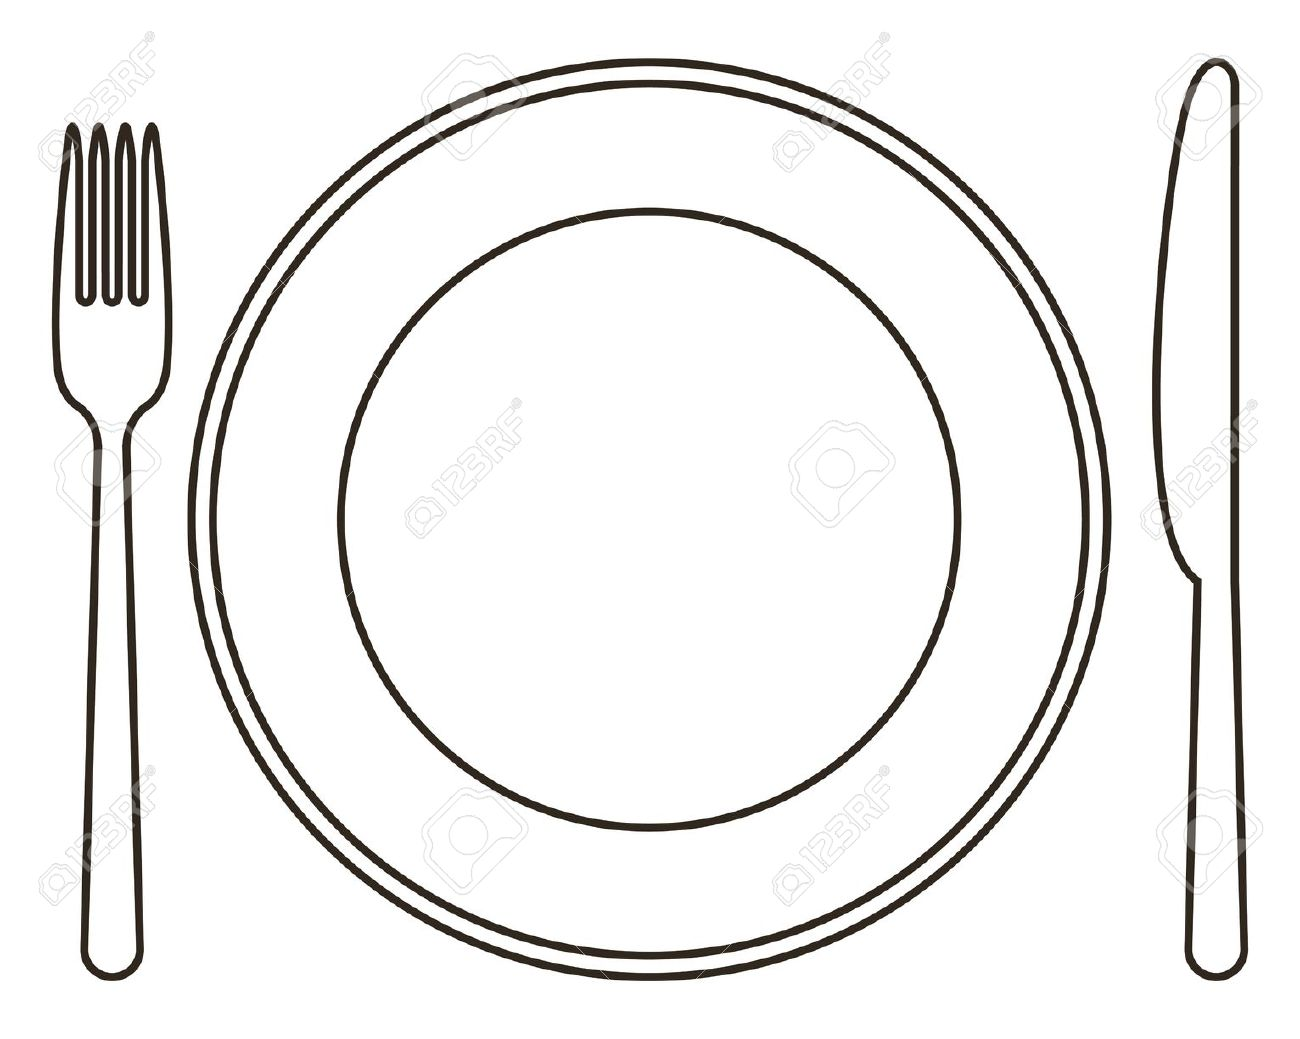 Dish clipart plate outline.